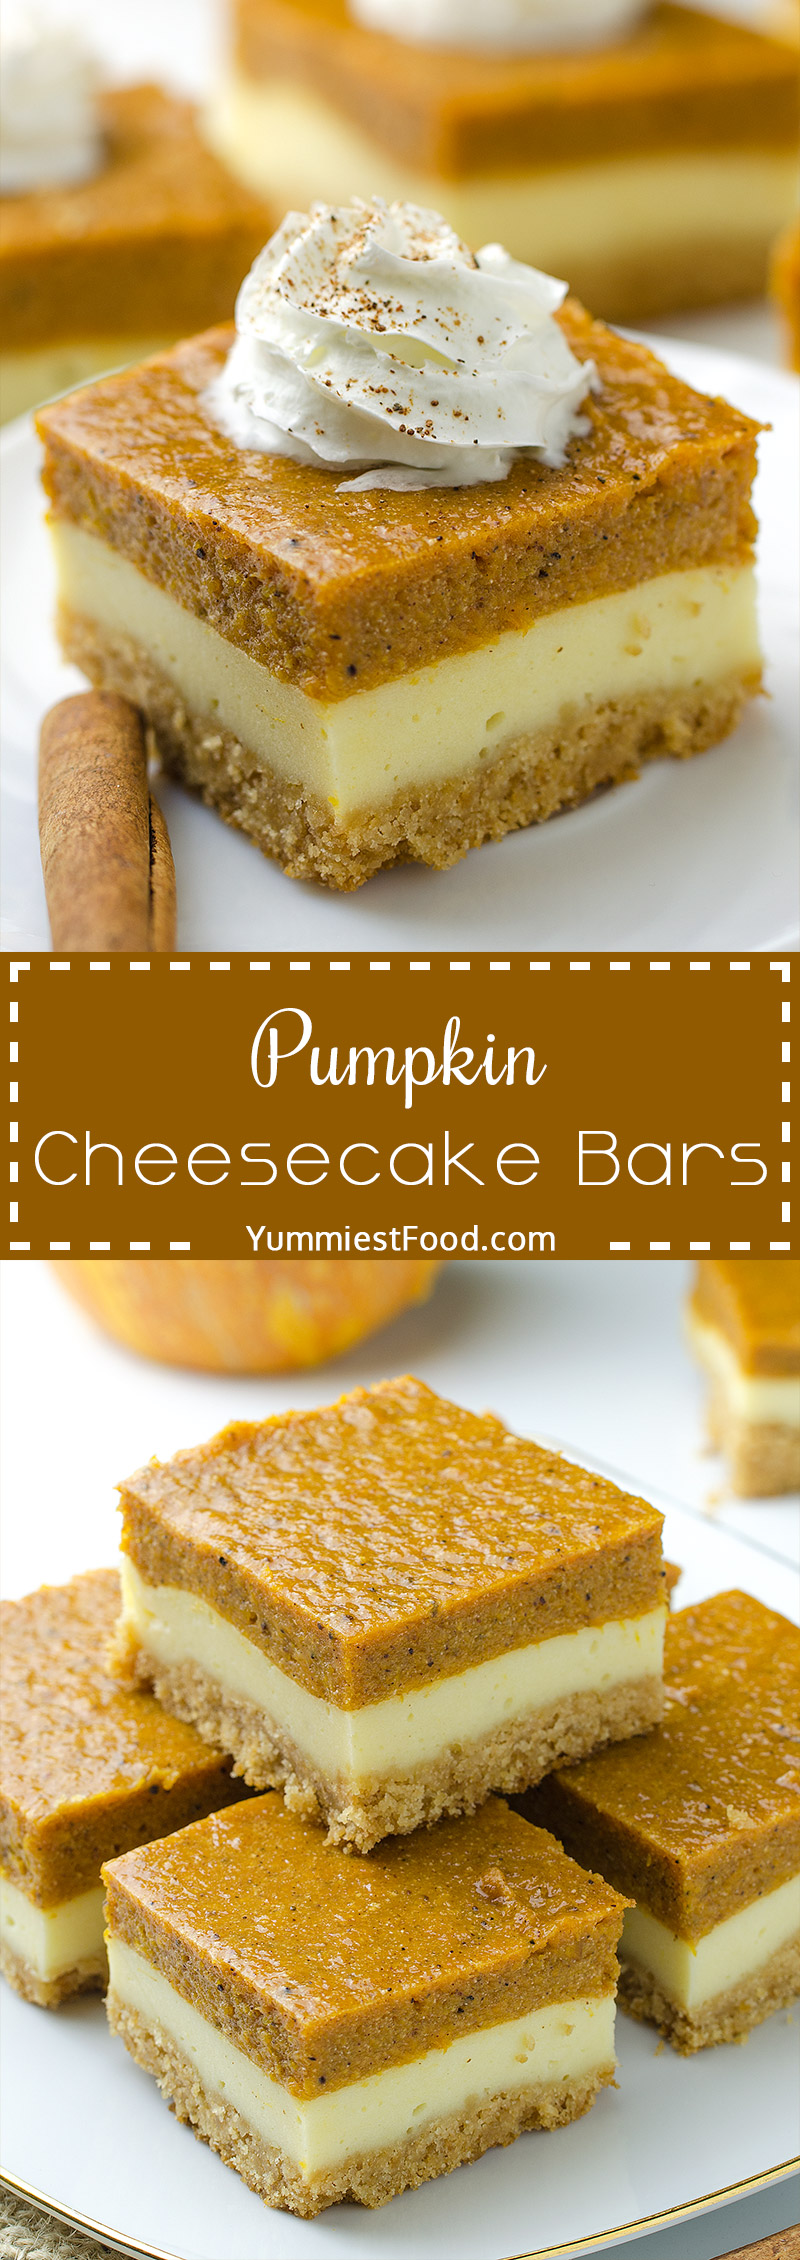 Pumpkin Cheesecake Bars - A super tasty sweet treat during the fall and holiday season